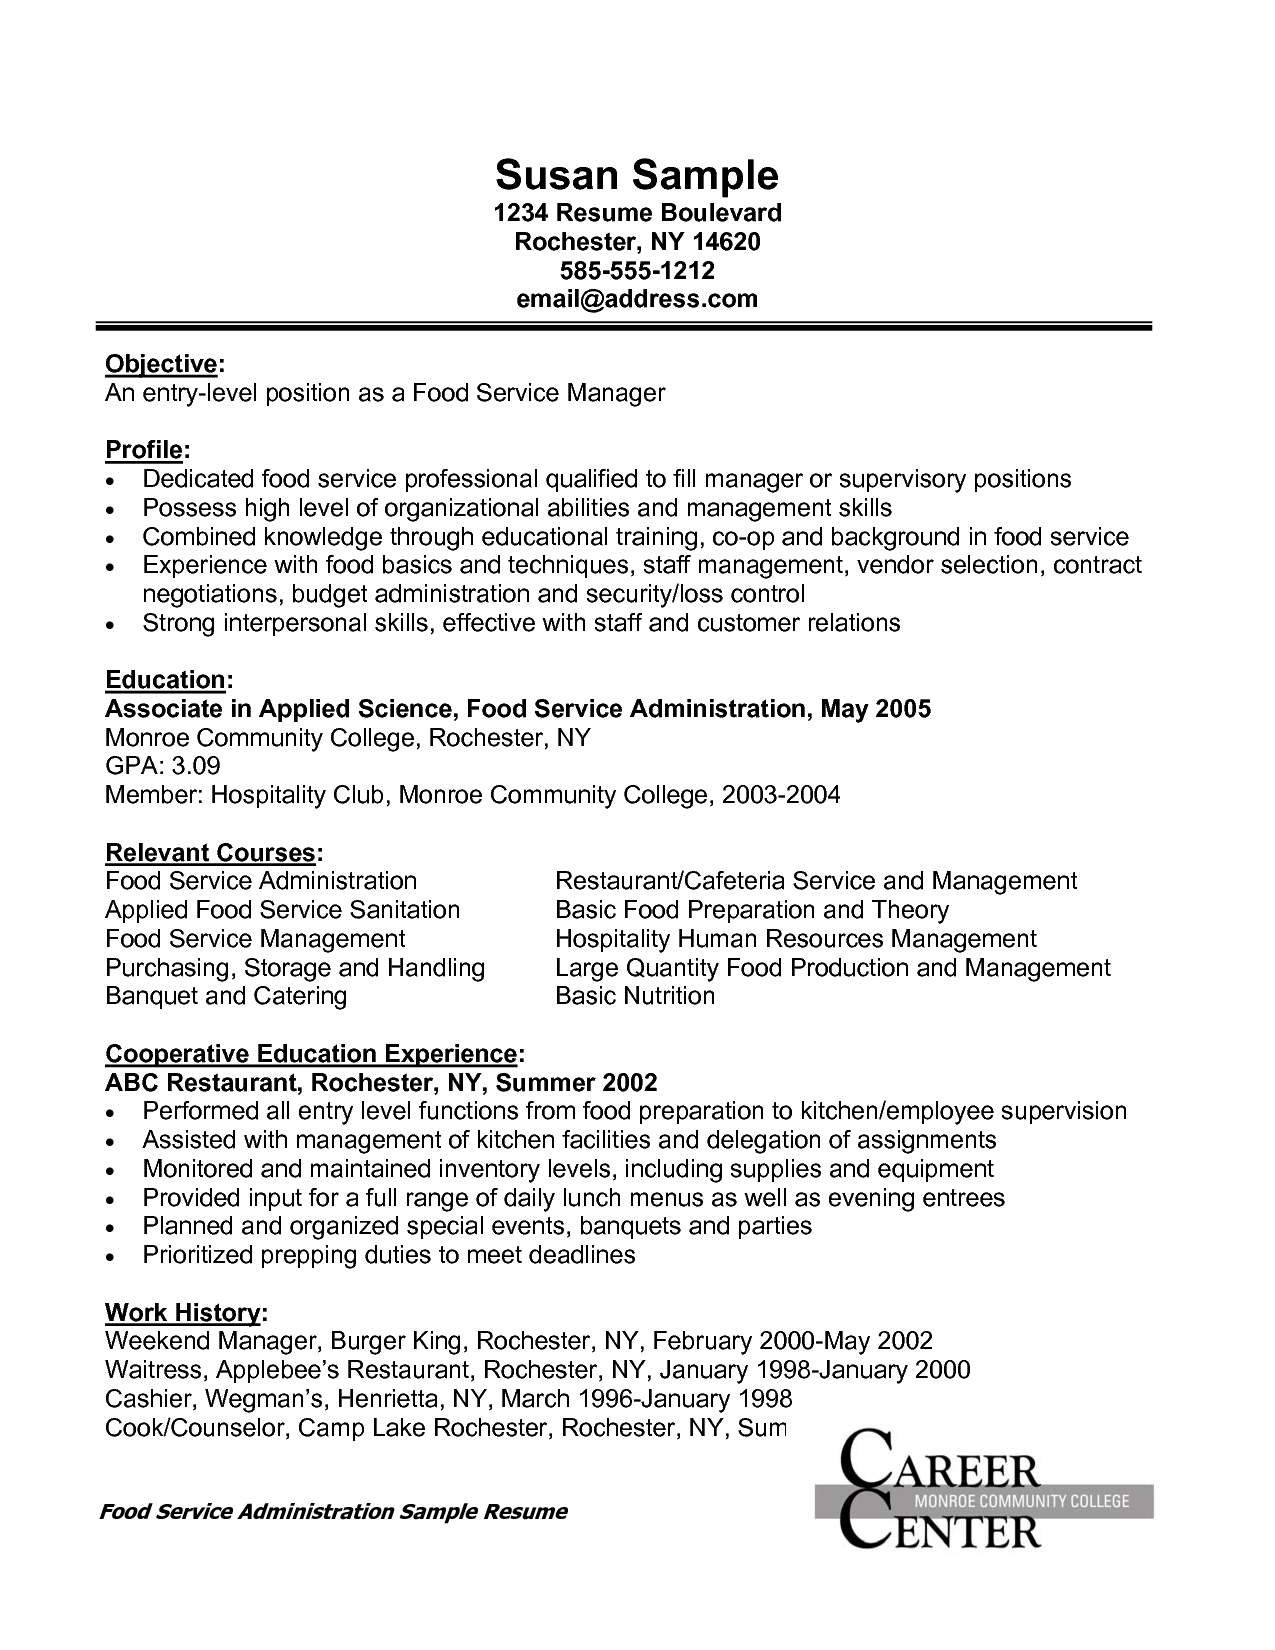 Security Supervisor Resume Event Manager Resume Conference Sample Cover Letter For Catering